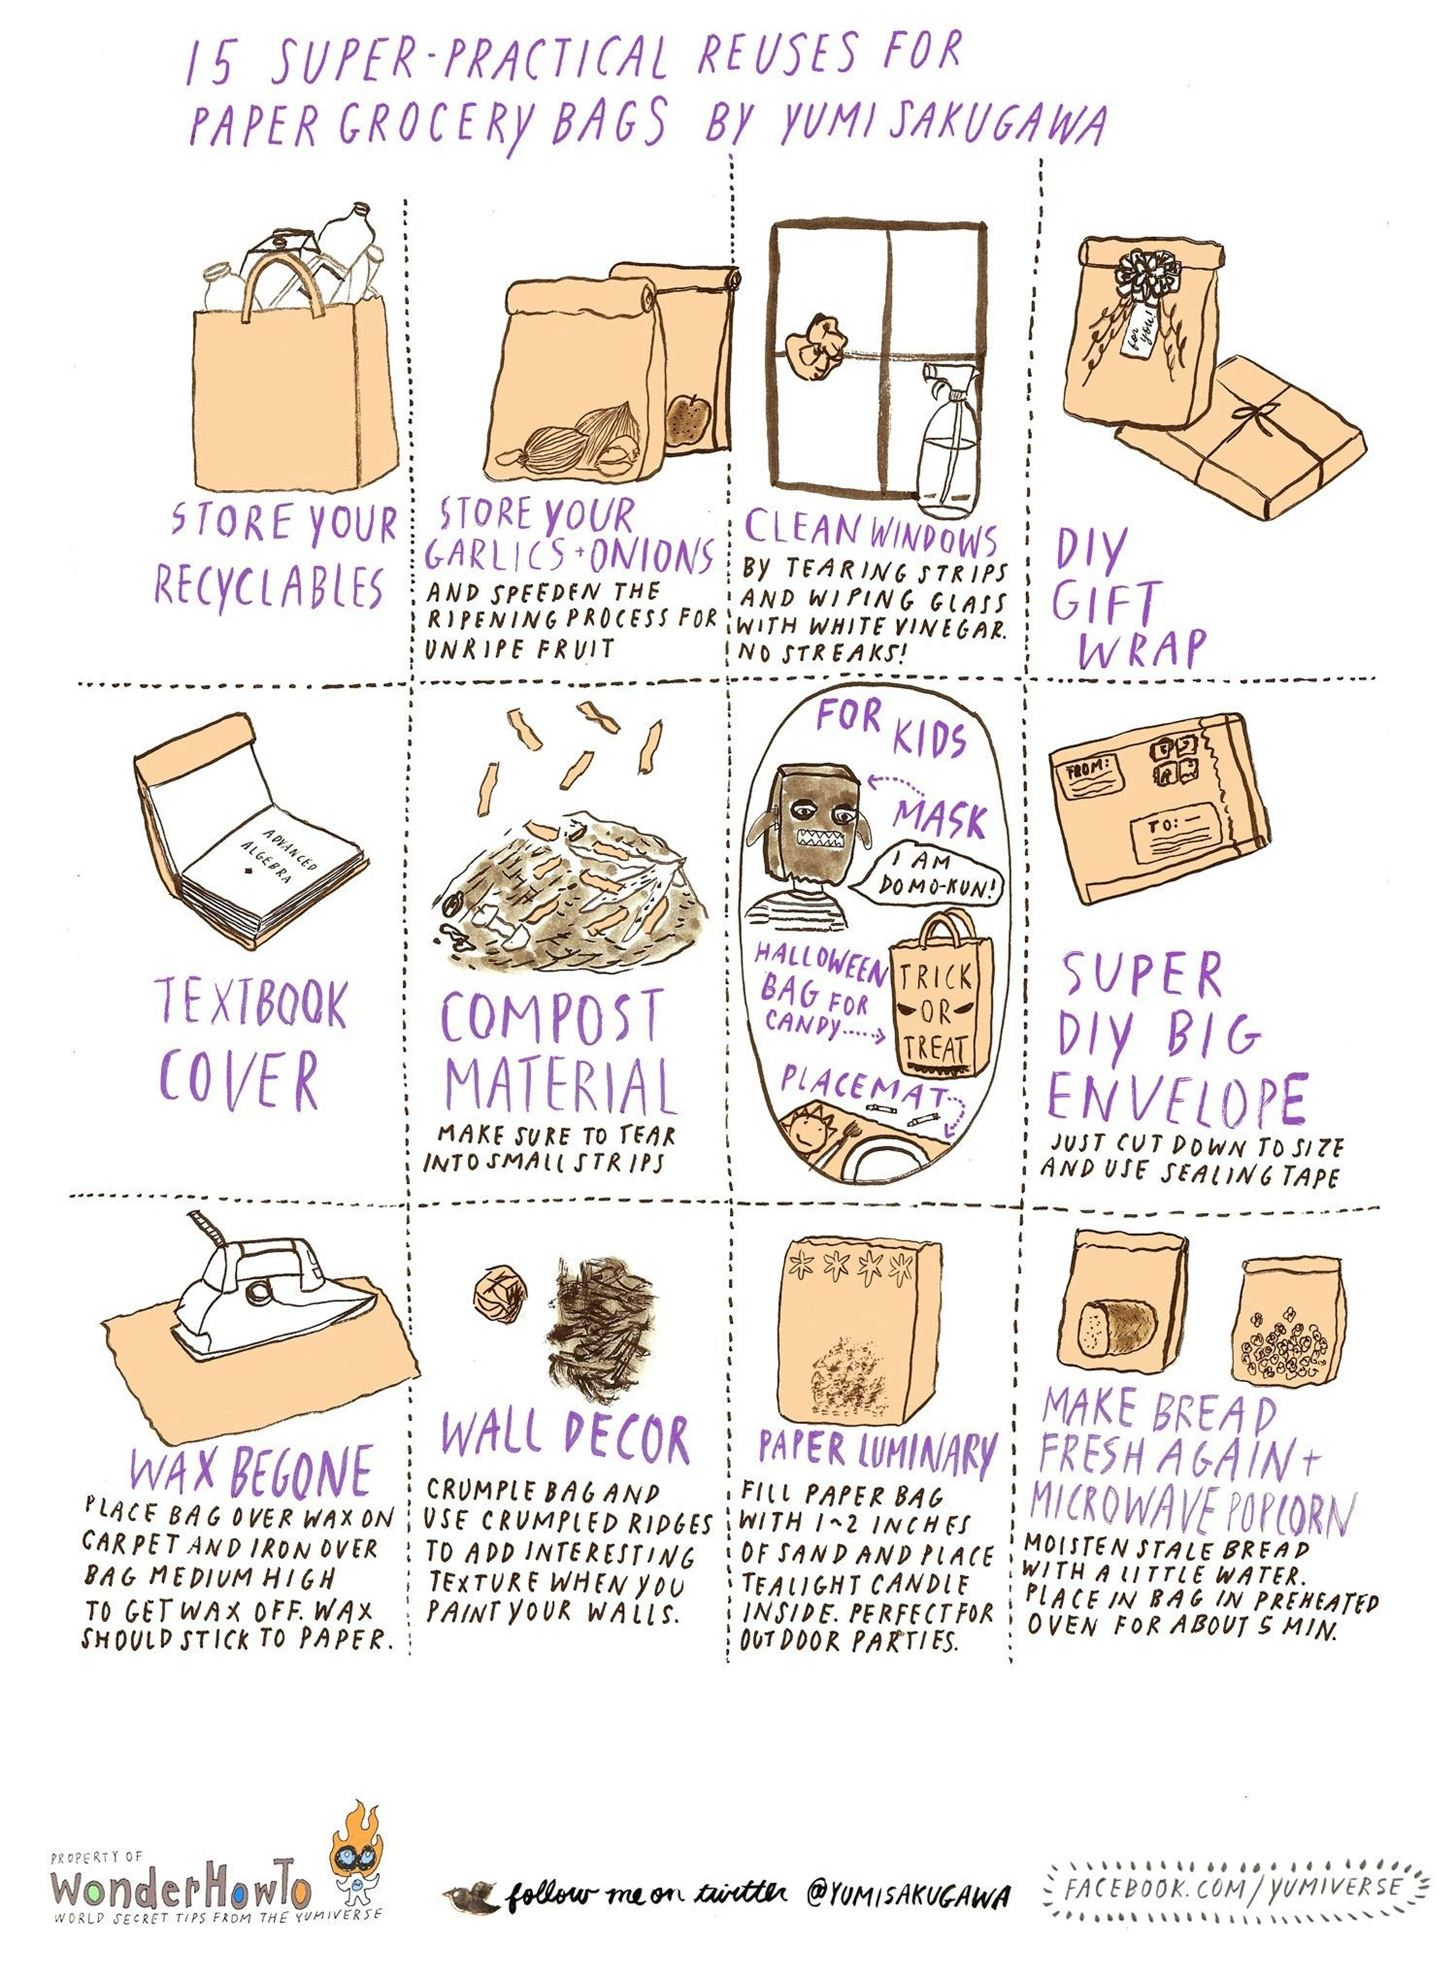 15 Super-Practical Reuses for Paper Grocery Bags